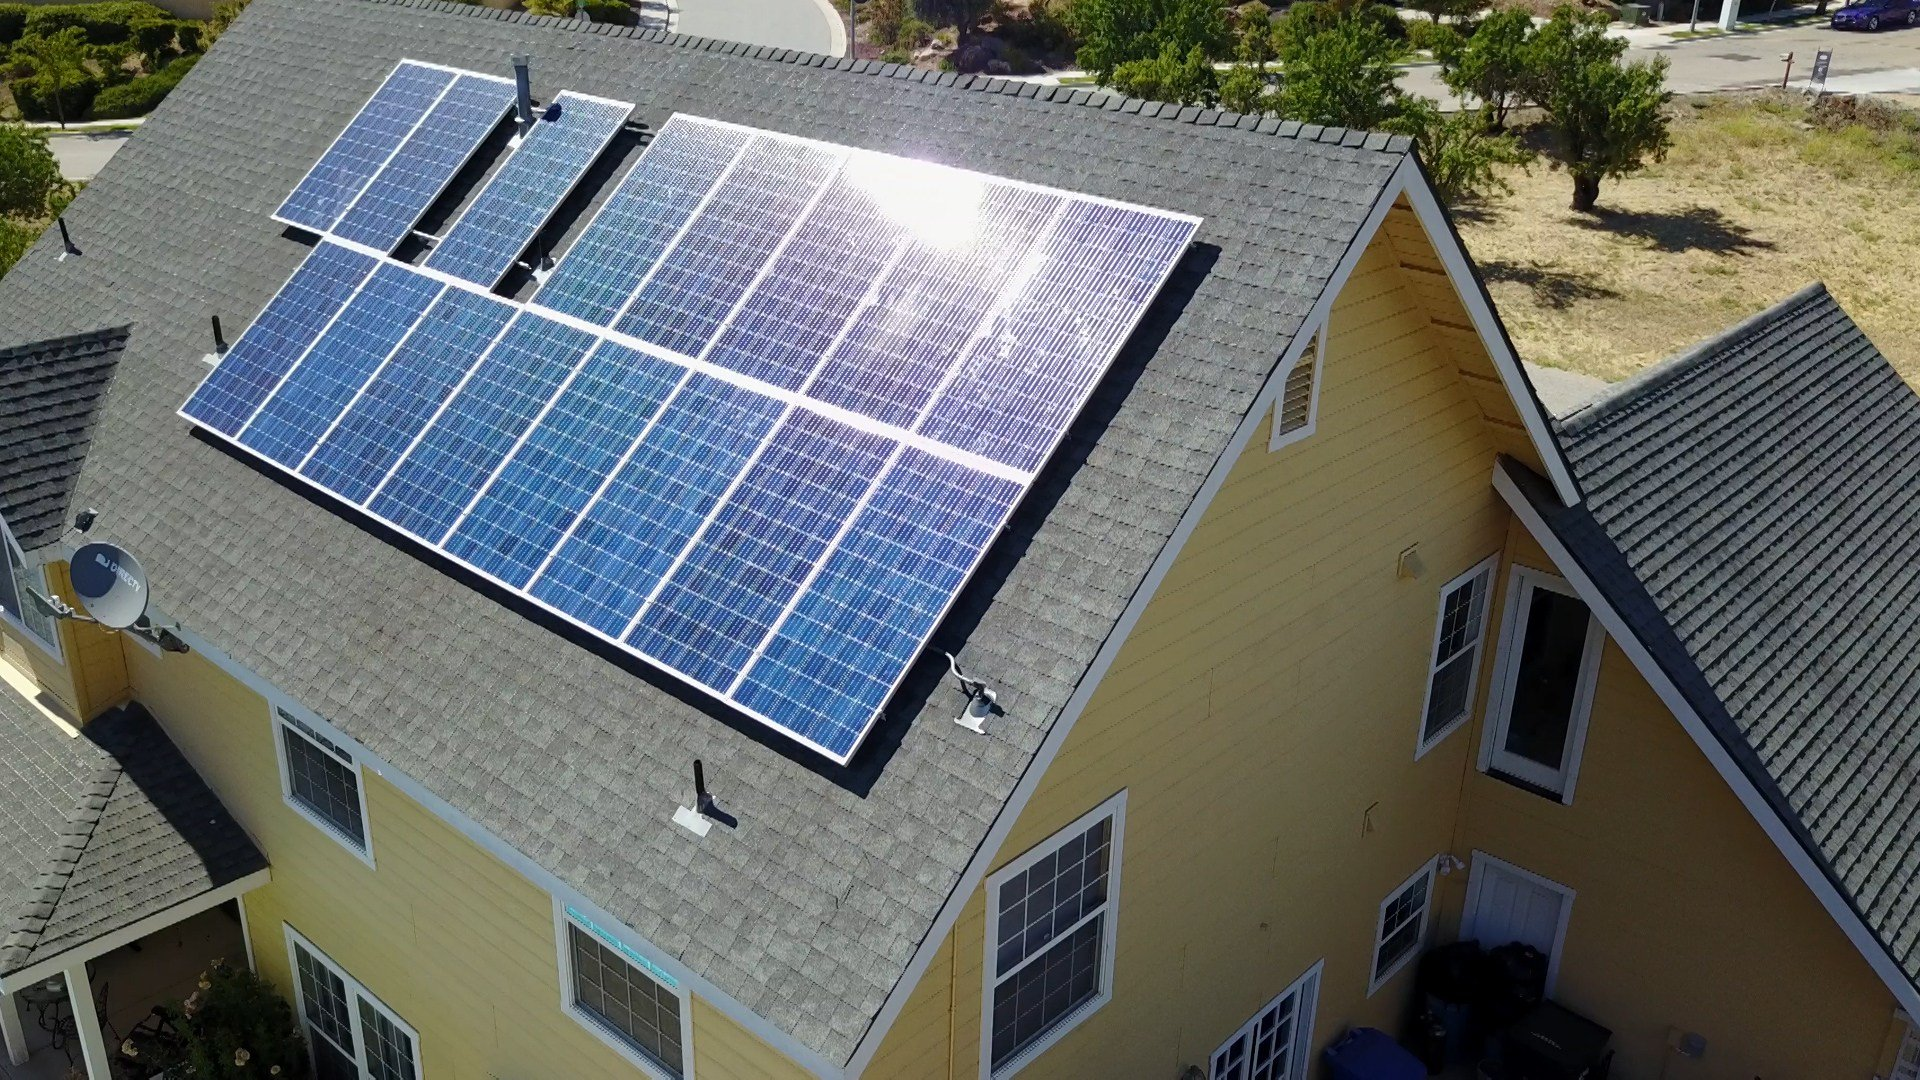 California Votes To Require Solar On Homes: 'An Undeniably Historic Decision'